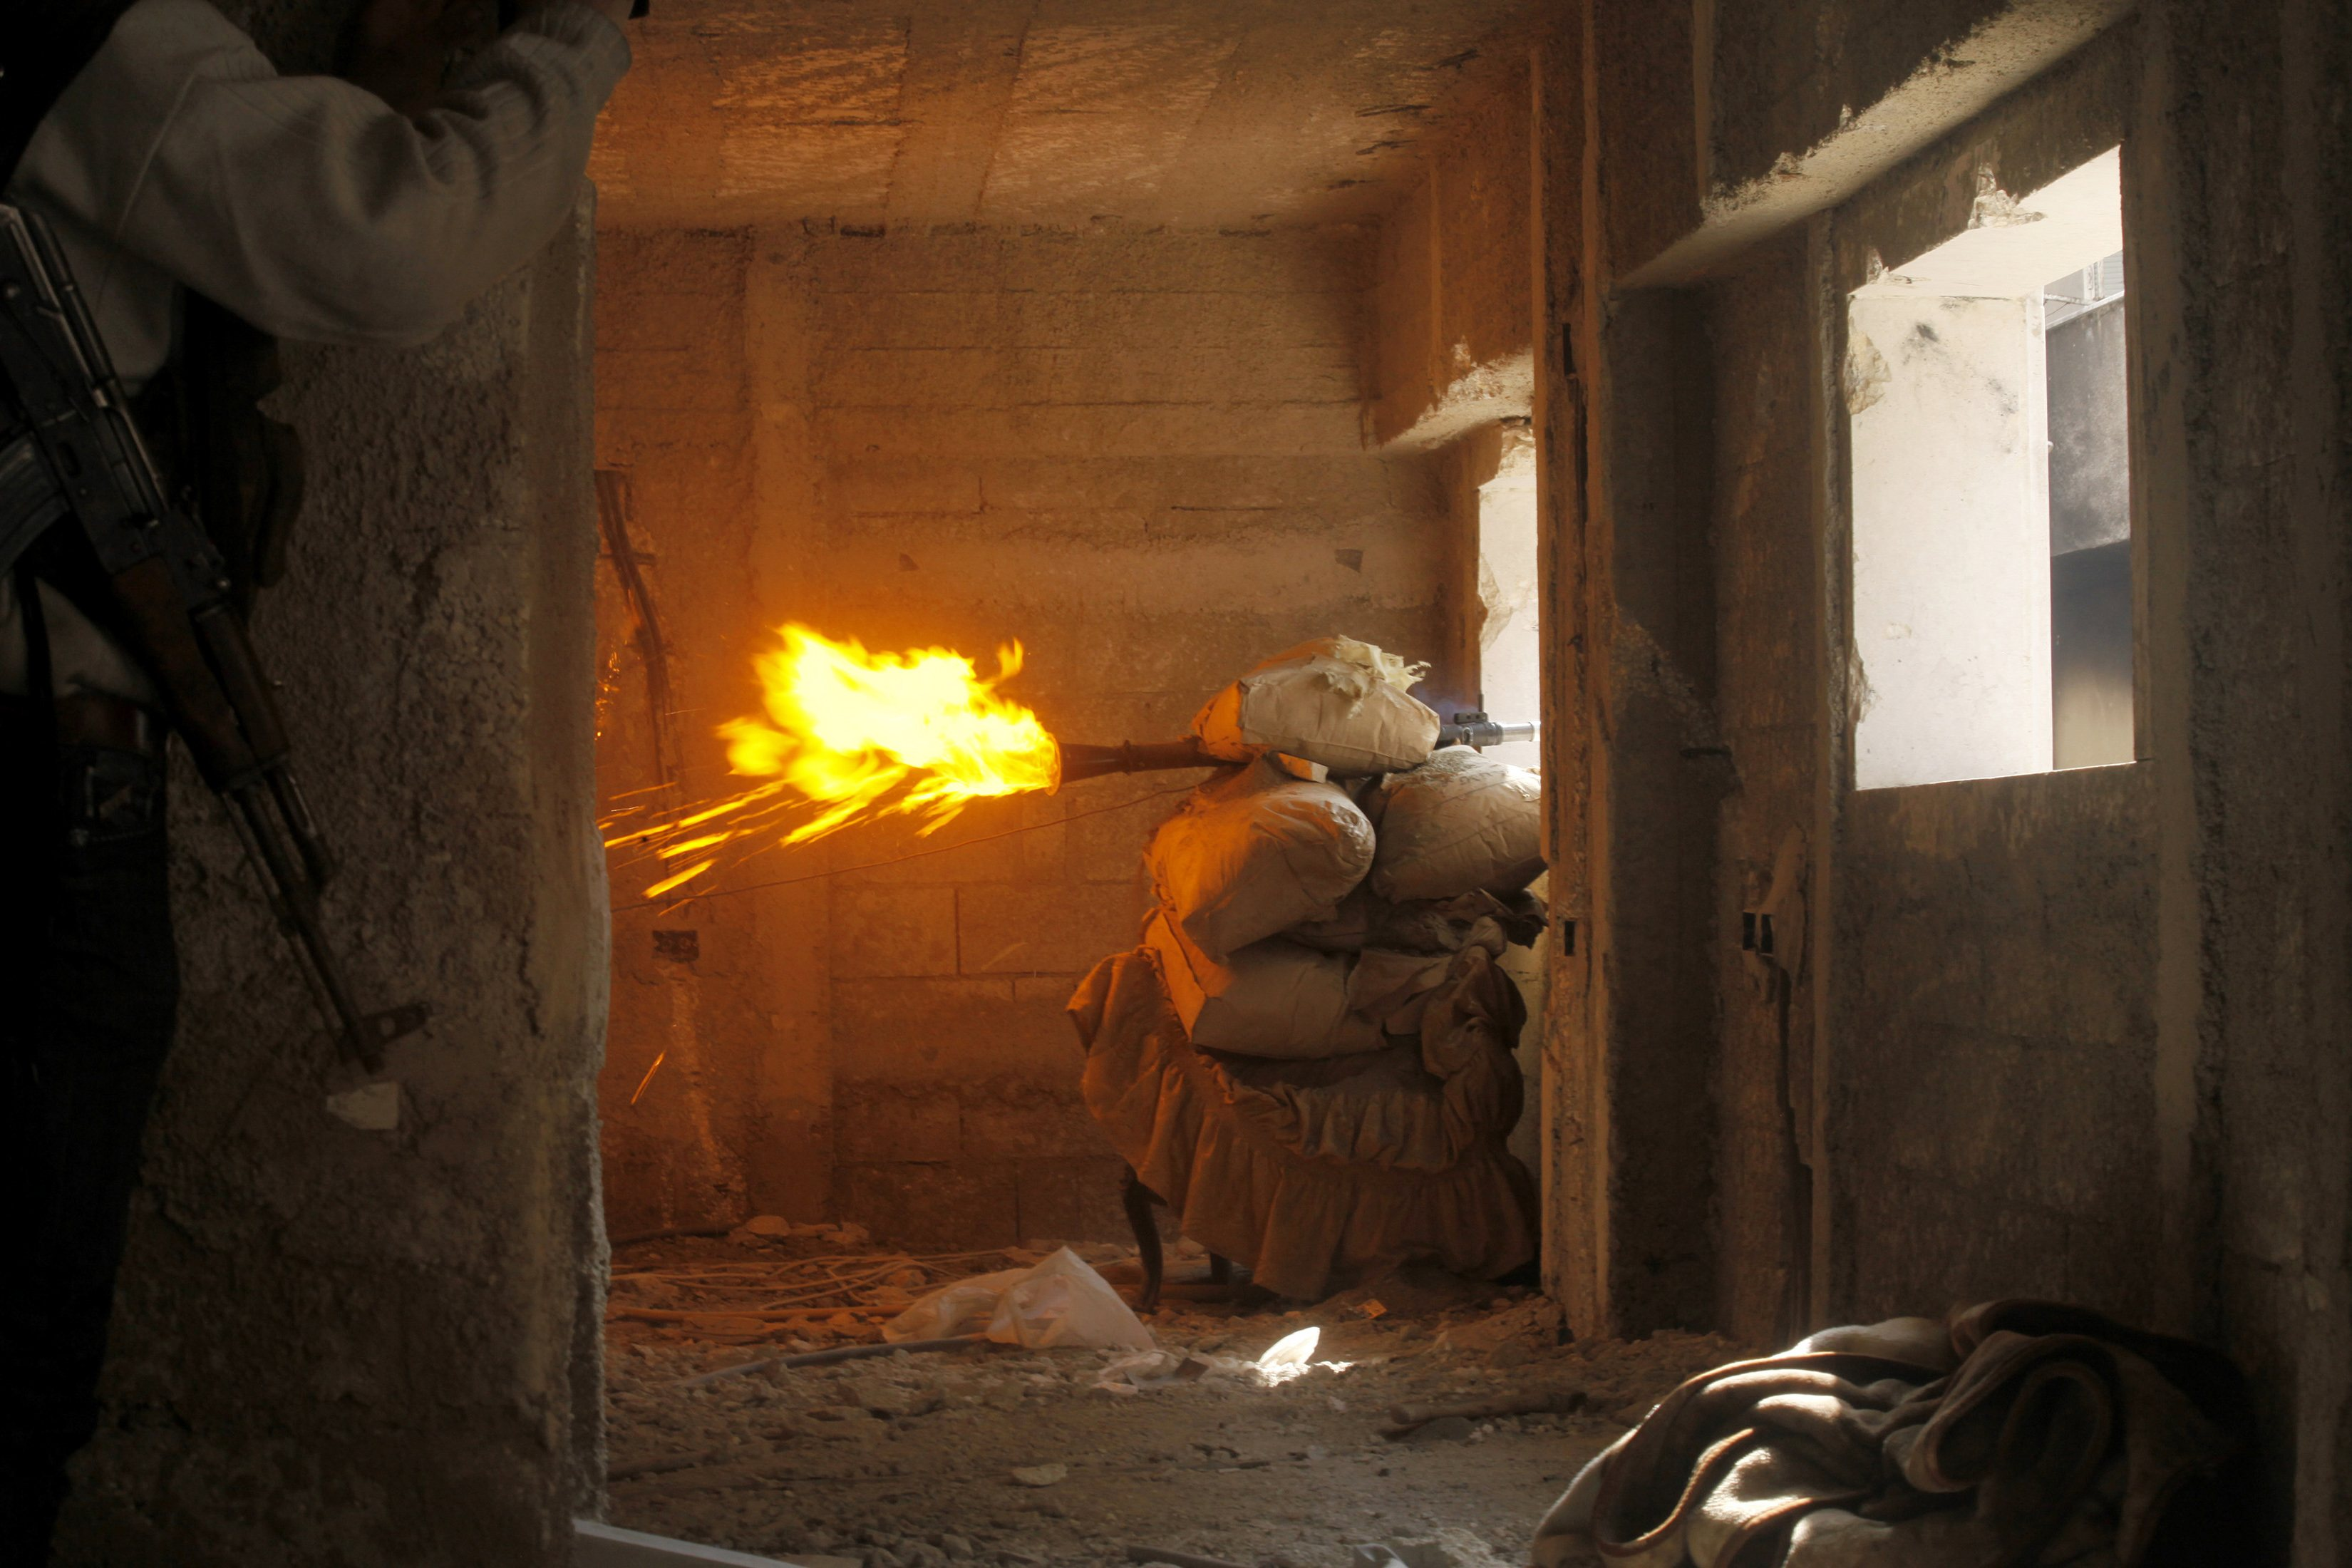 Free Syrian Army fighters take cover while firing a rocket on the front line in Izaa district in Aleppo.?Photo by Reuters